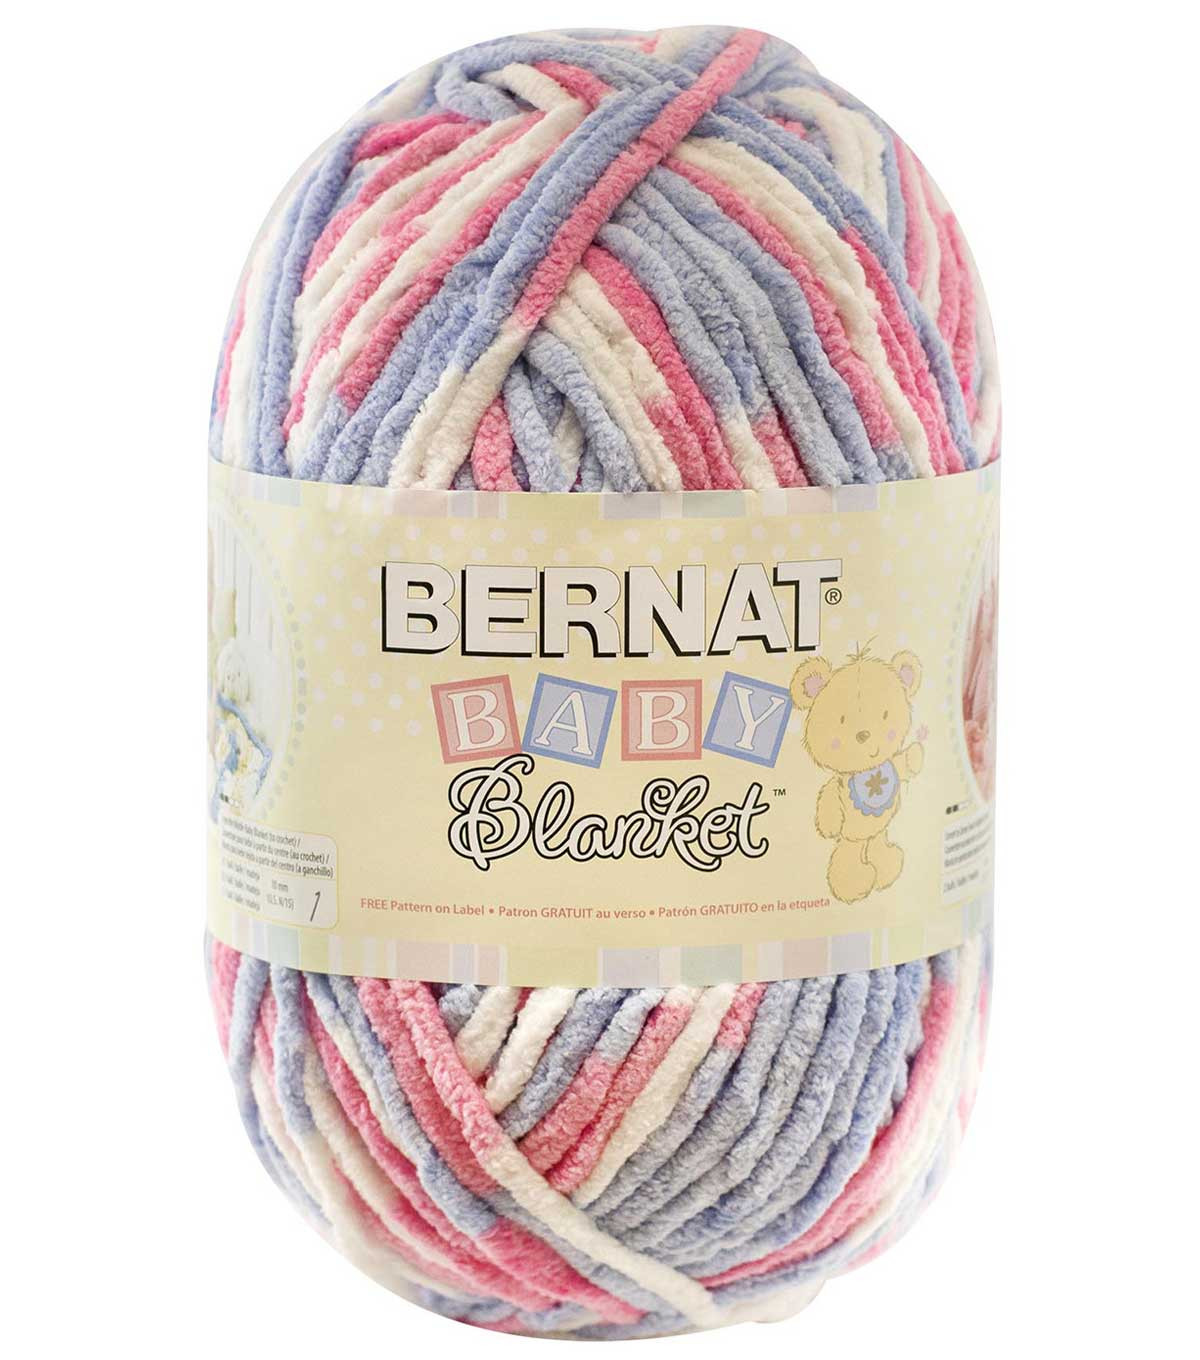 Bernat Baby Blanket Yarn Awesome Bernat Baby Blanket Yarn 10 5oz Of Delightful 42 Models Bernat Baby Blanket Yarn